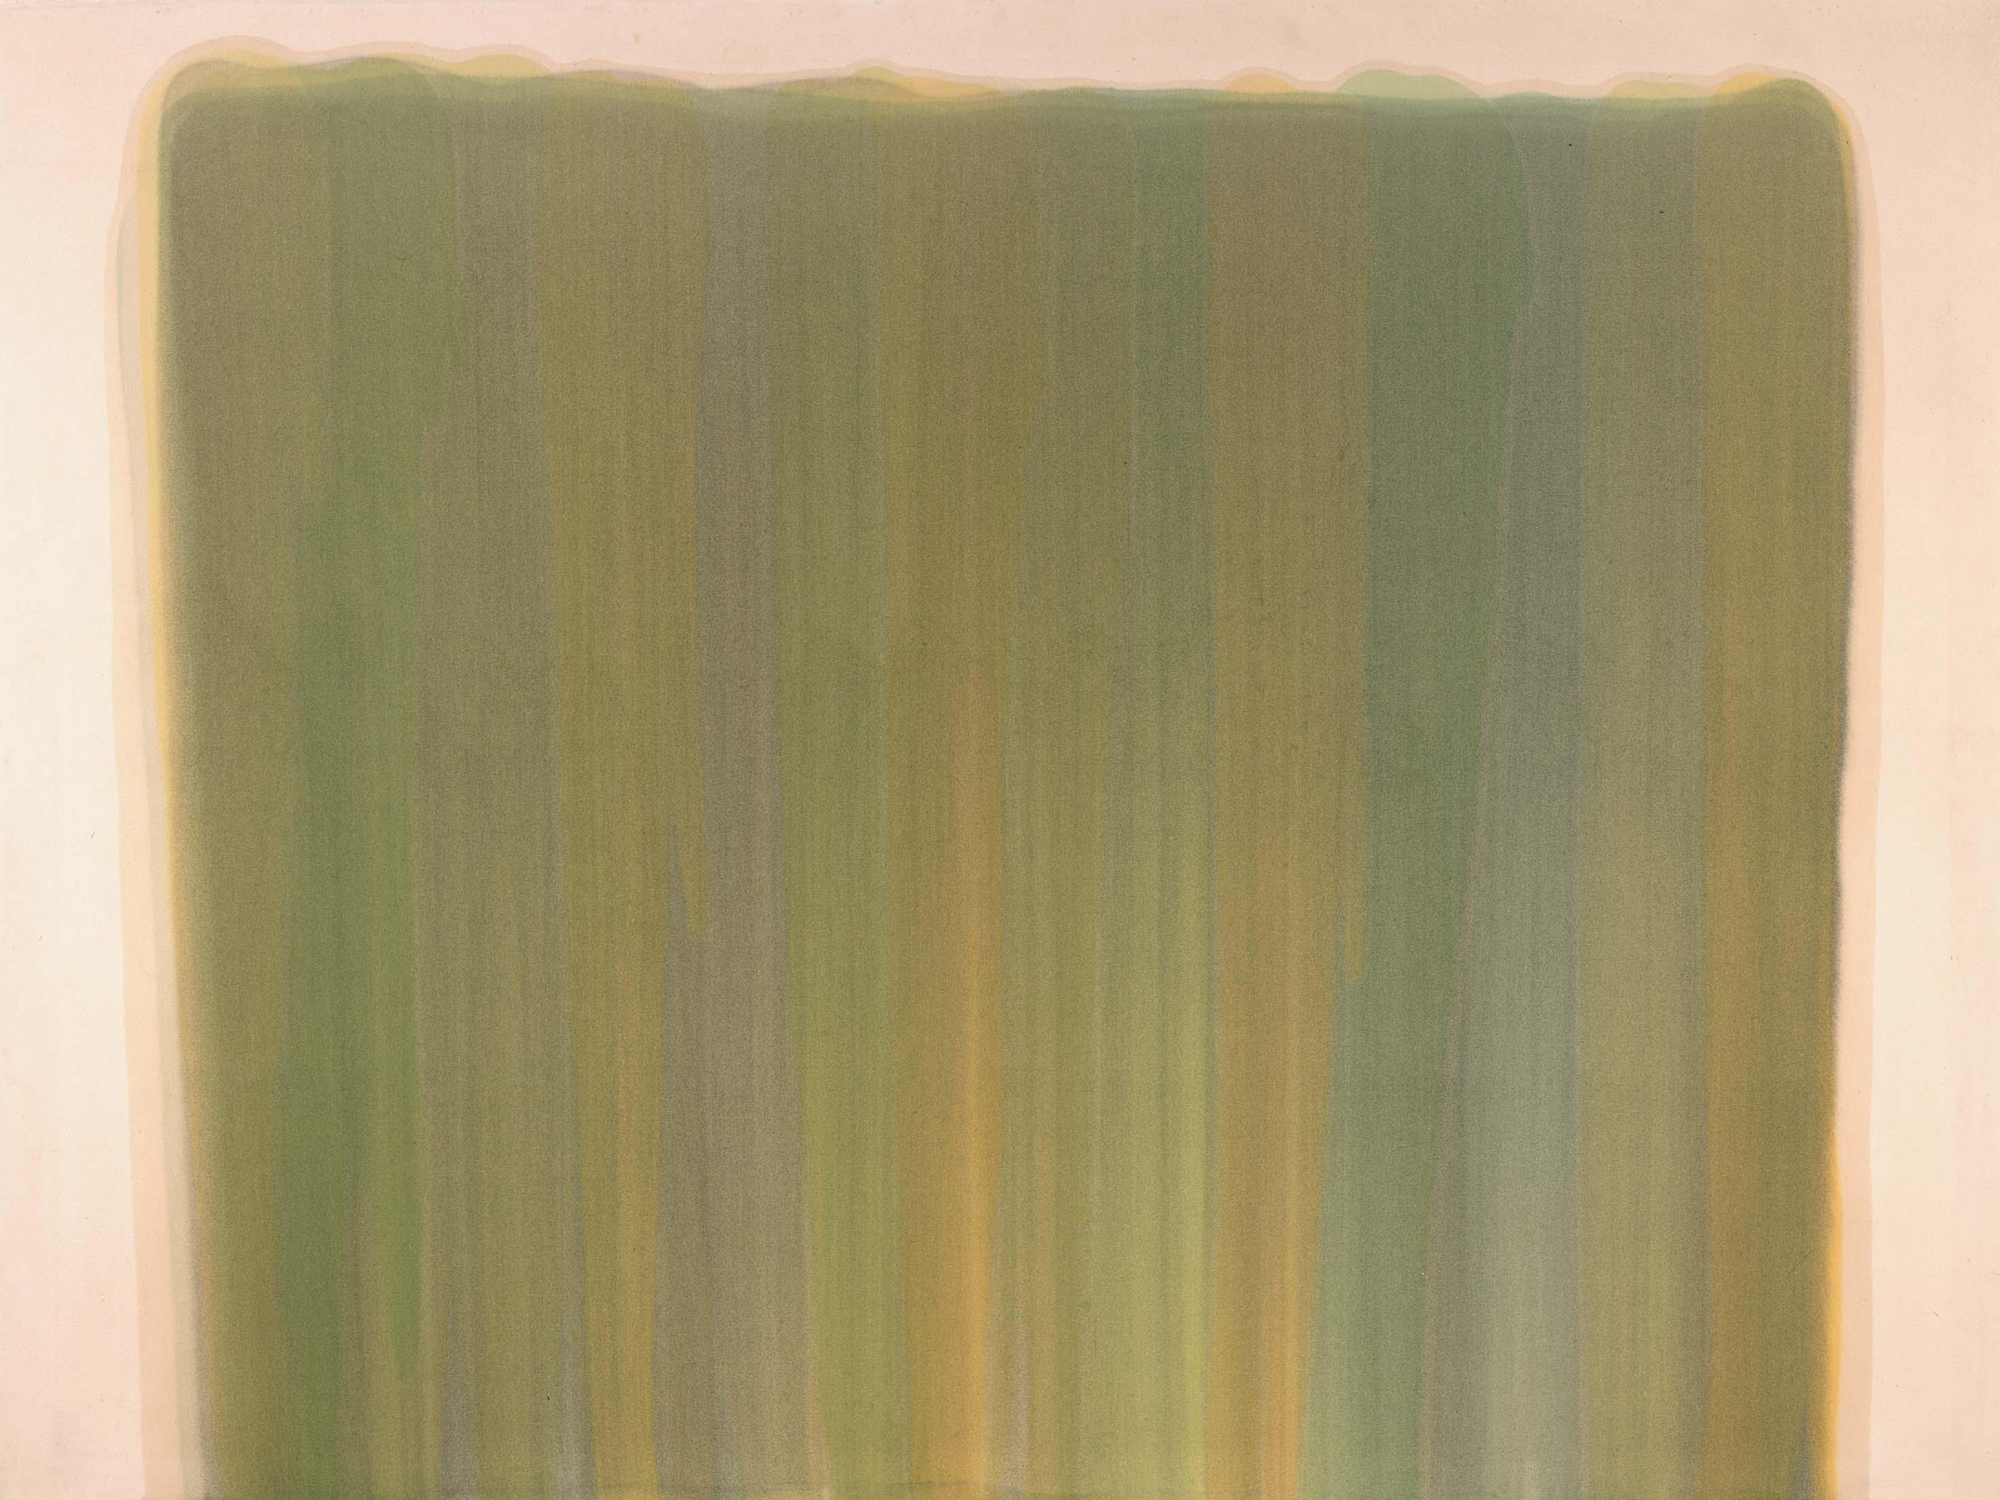 morris louis - vernal 1960 newsletter art comes to you 10